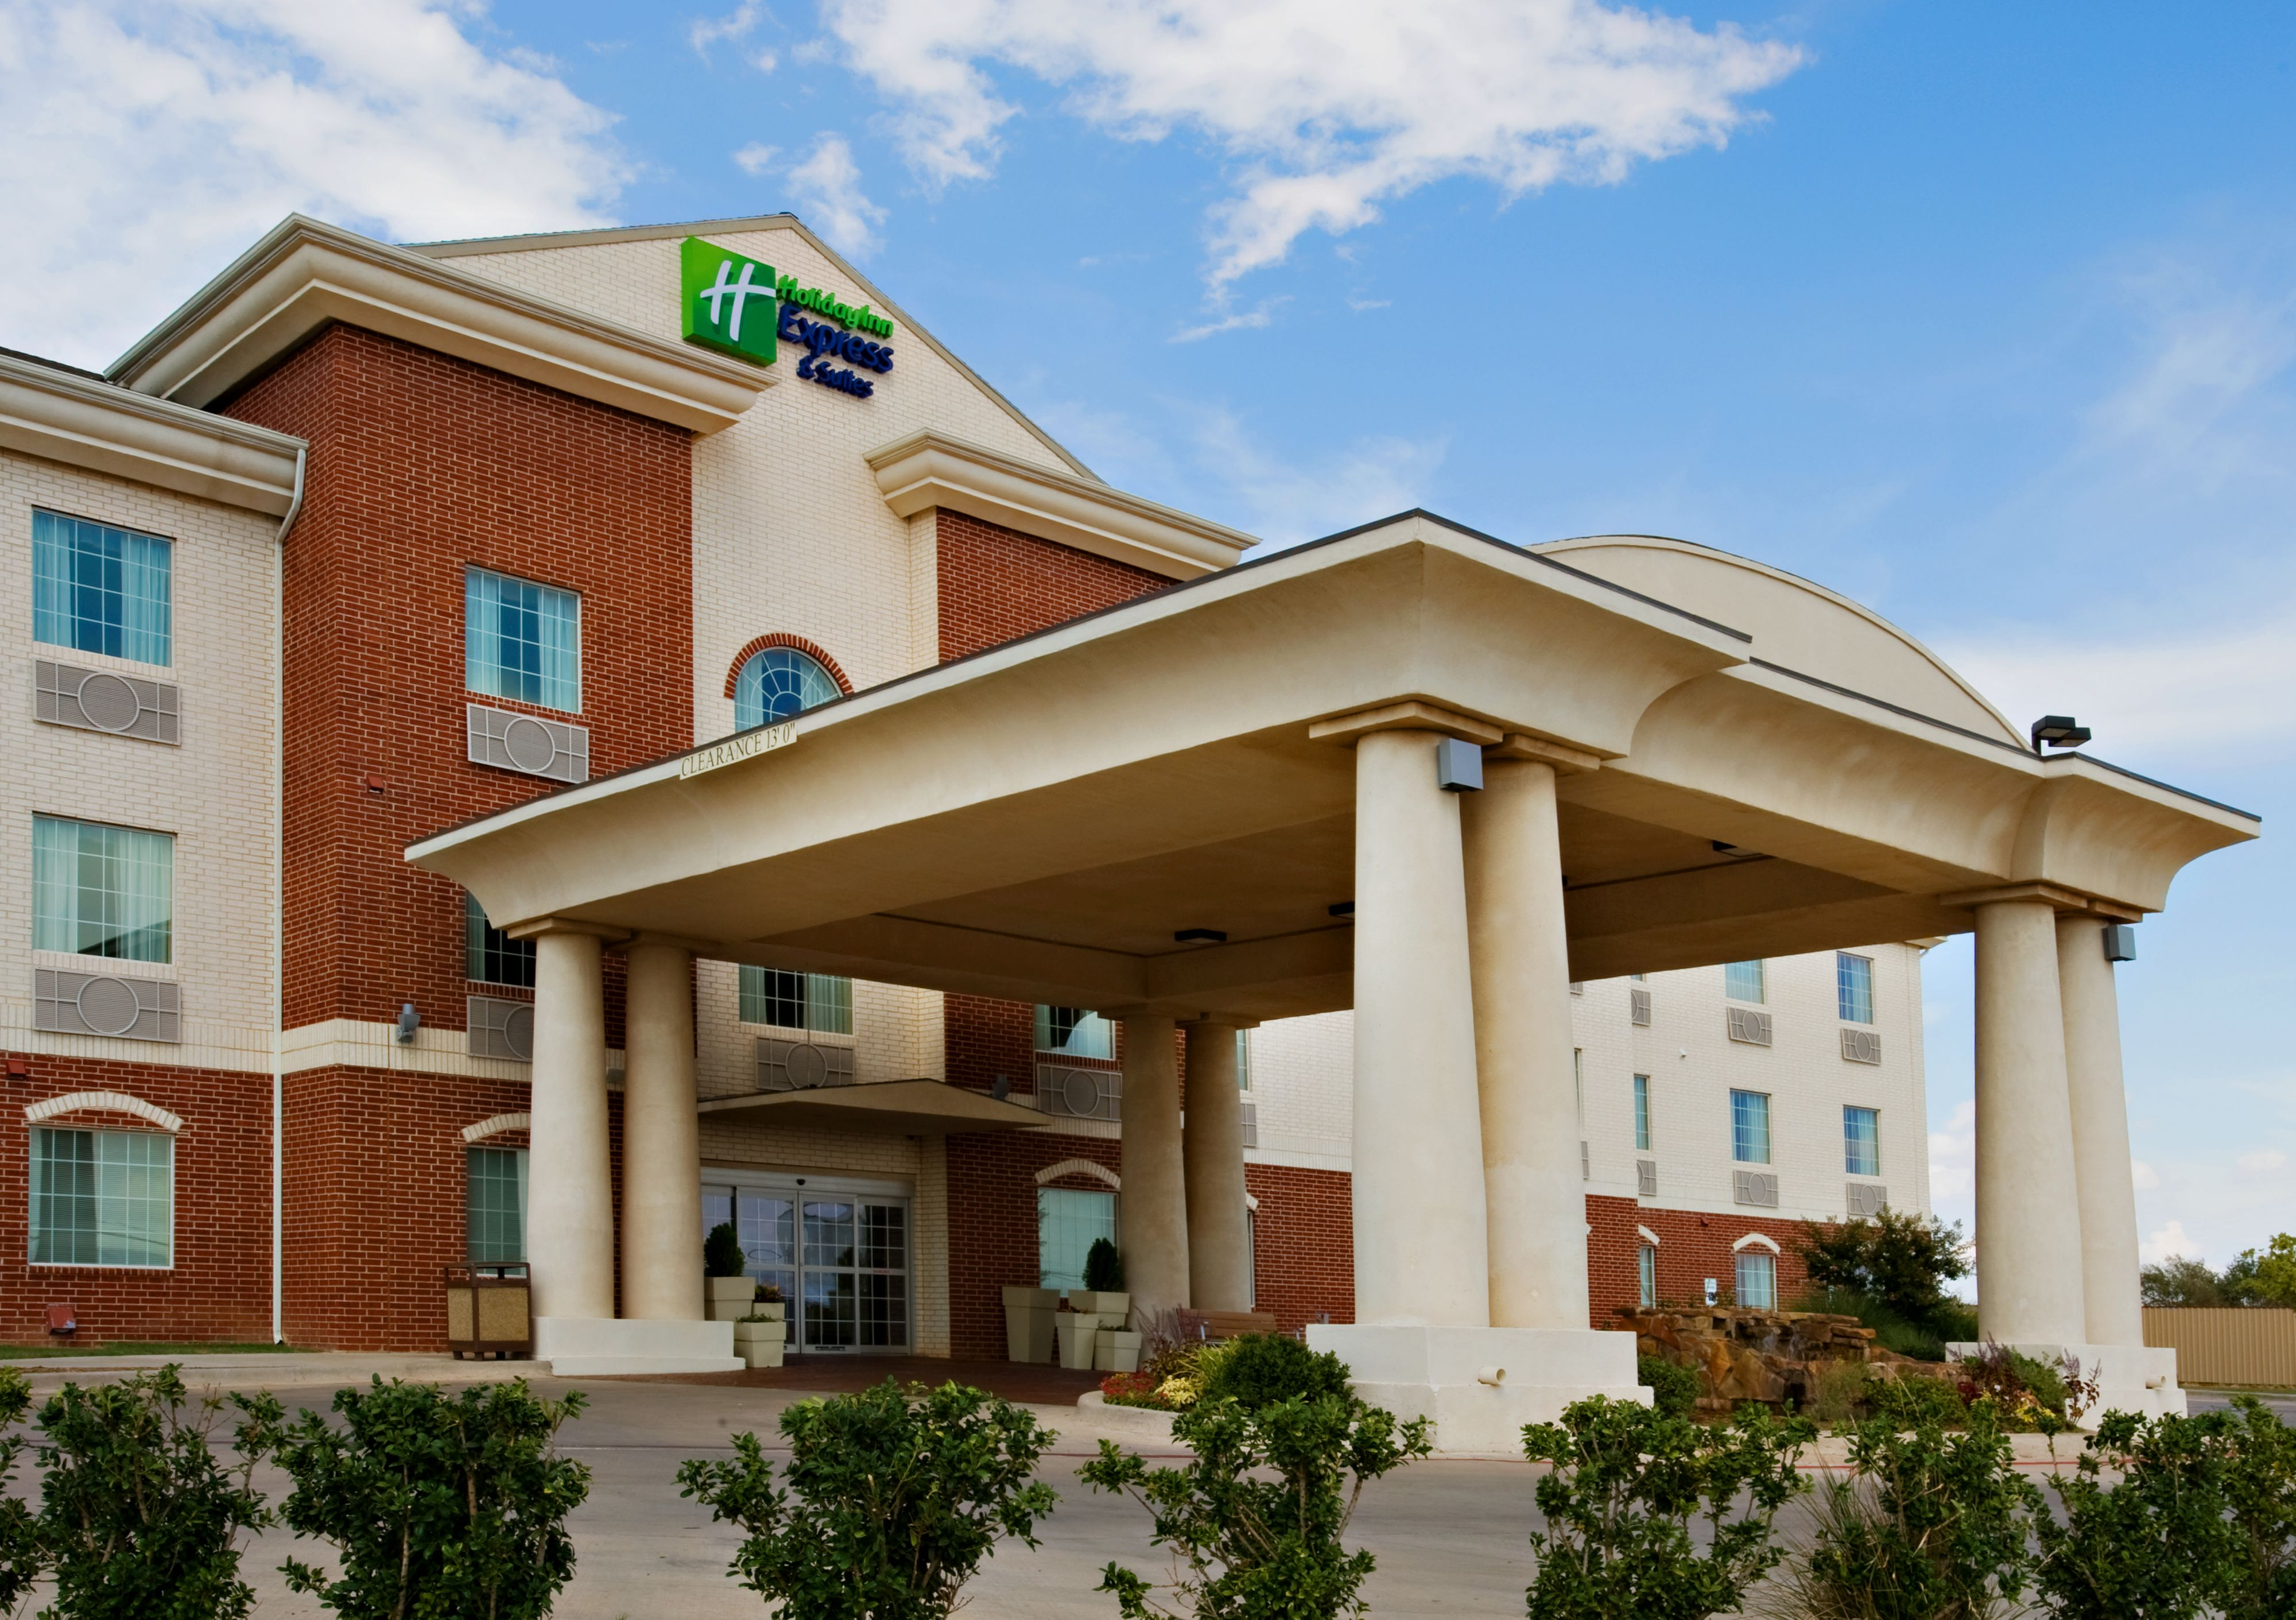 Holiday Inn Express & Suites Lenoir City (Knoxville Area) image 5